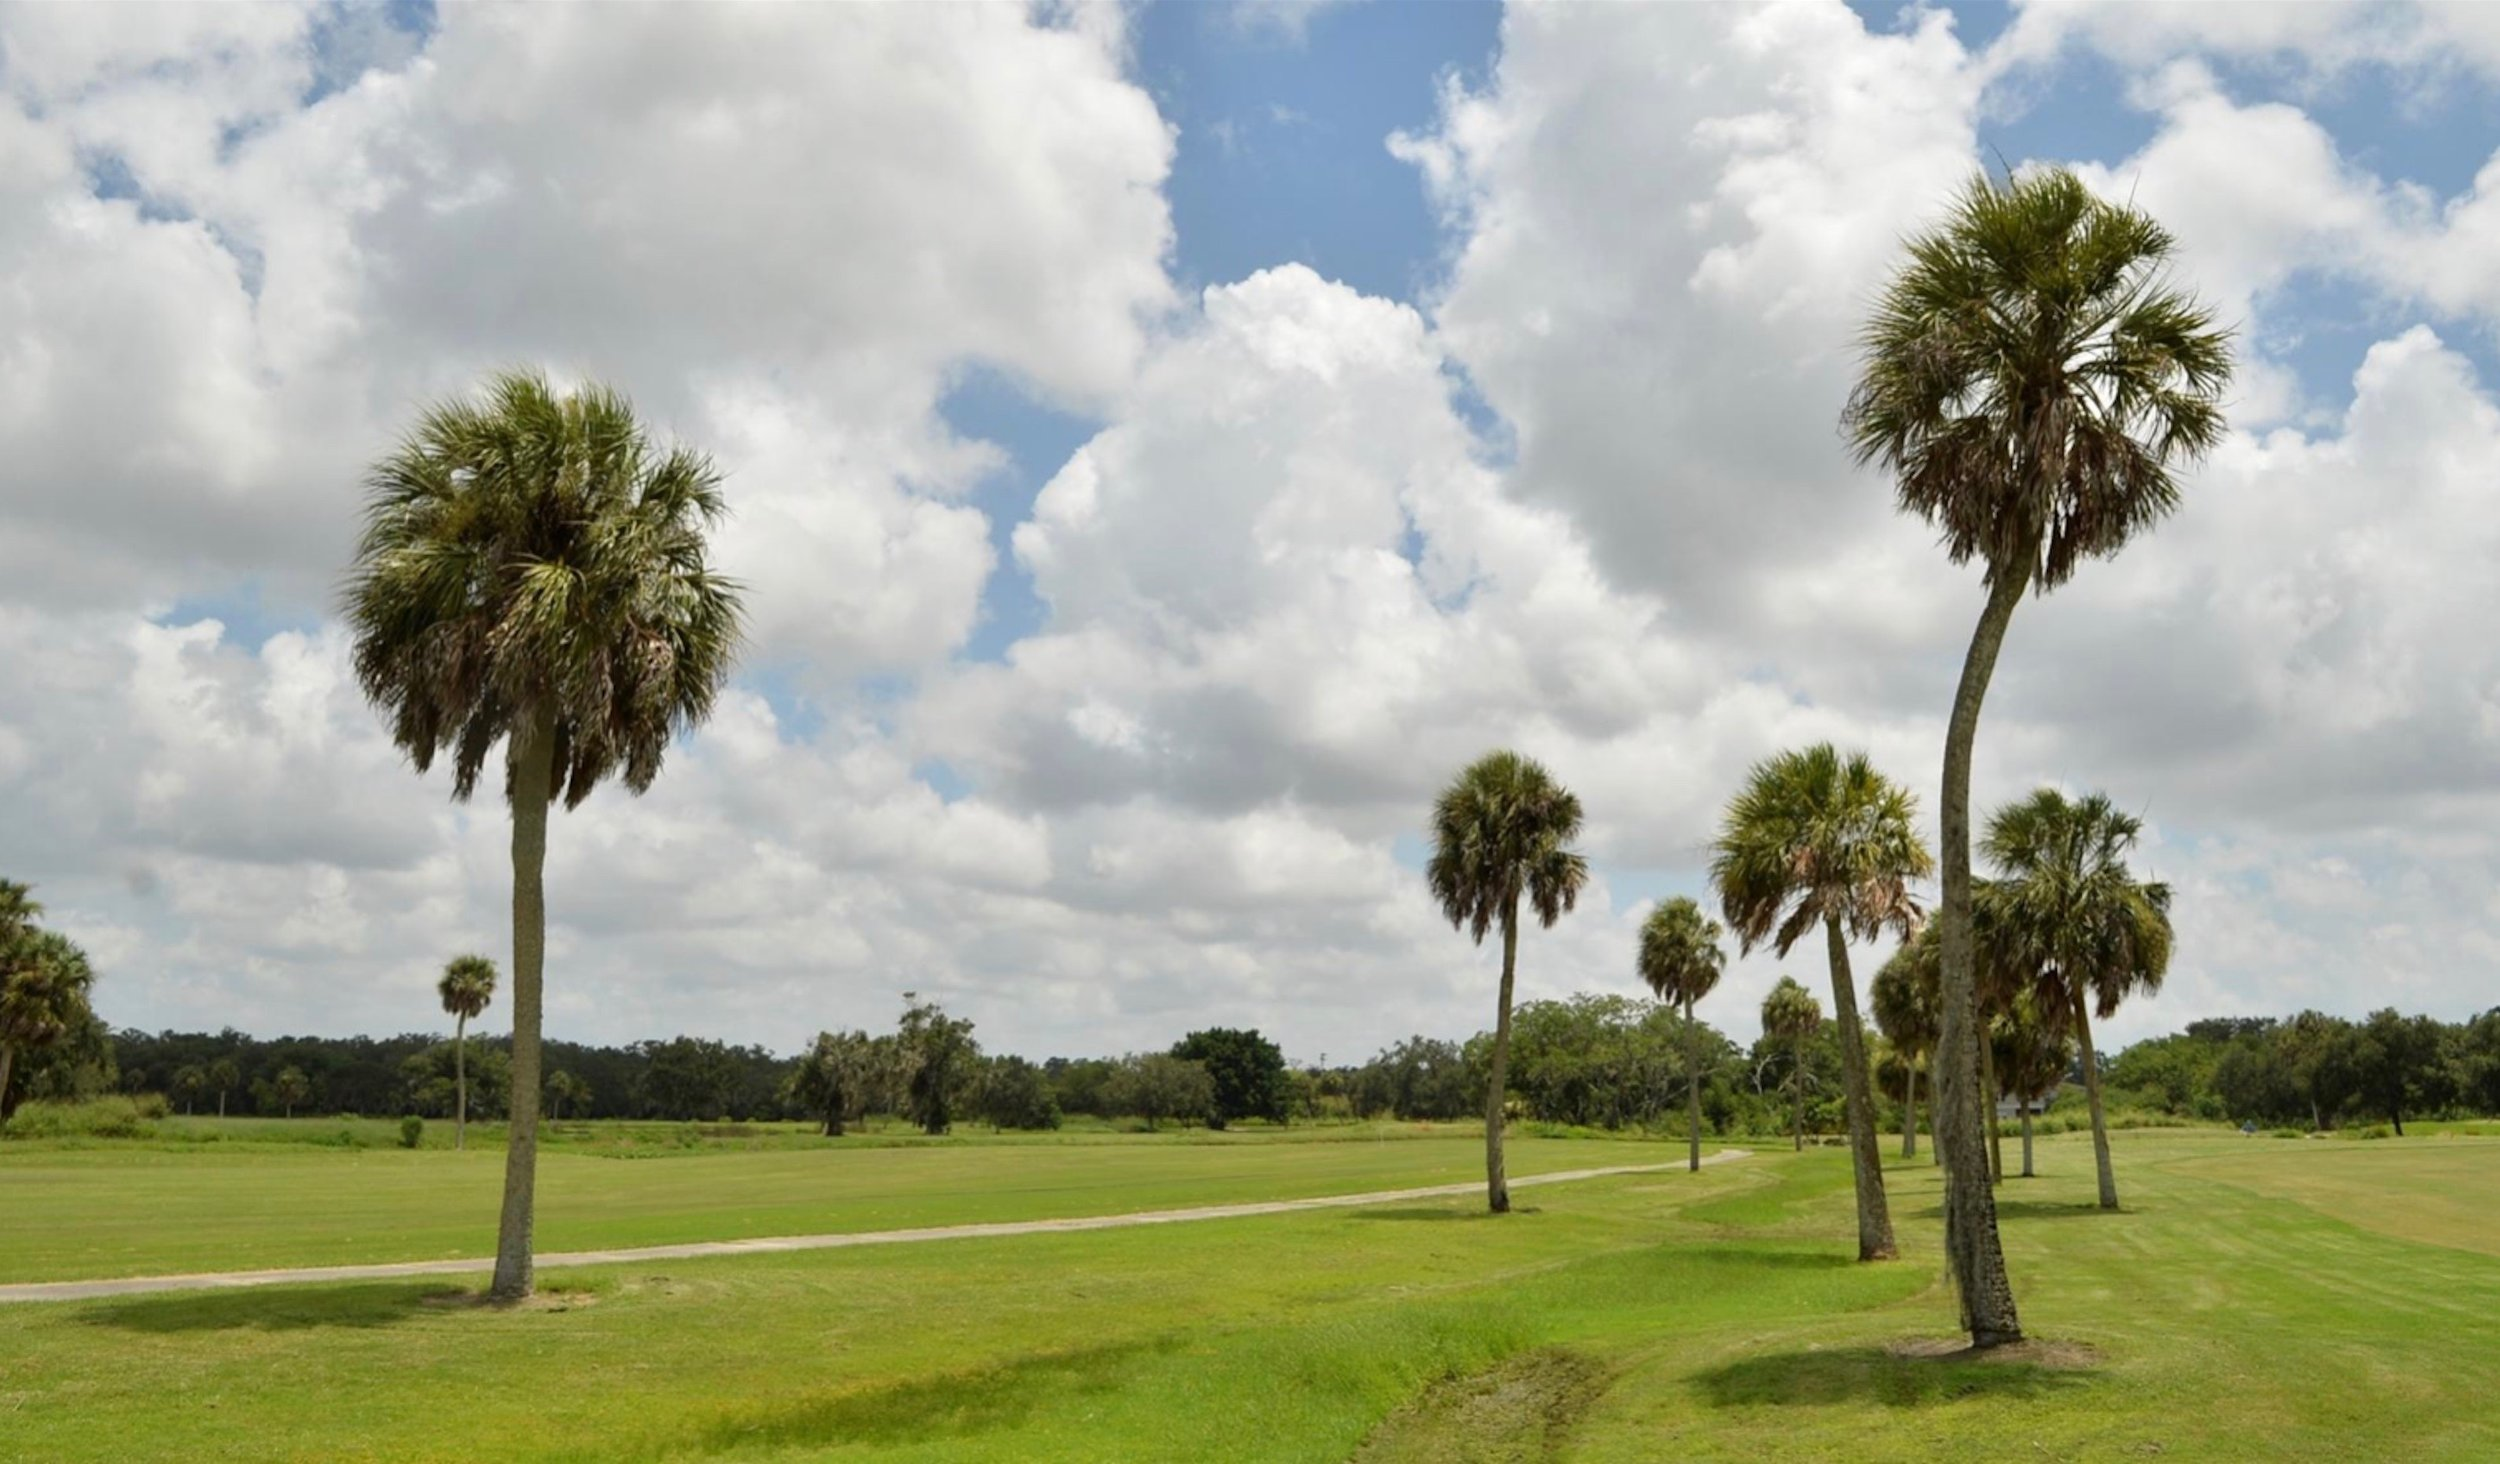 The  Bobby Jones  Golf Course is a 45-hole municipal golf course operated by the City of Sarasota. The city is exploring with the Conservation Foundation of the Gulf Coast a plan to preserve the 300 acres as open space. Herald-Tribune staff photo /  Mike Lang